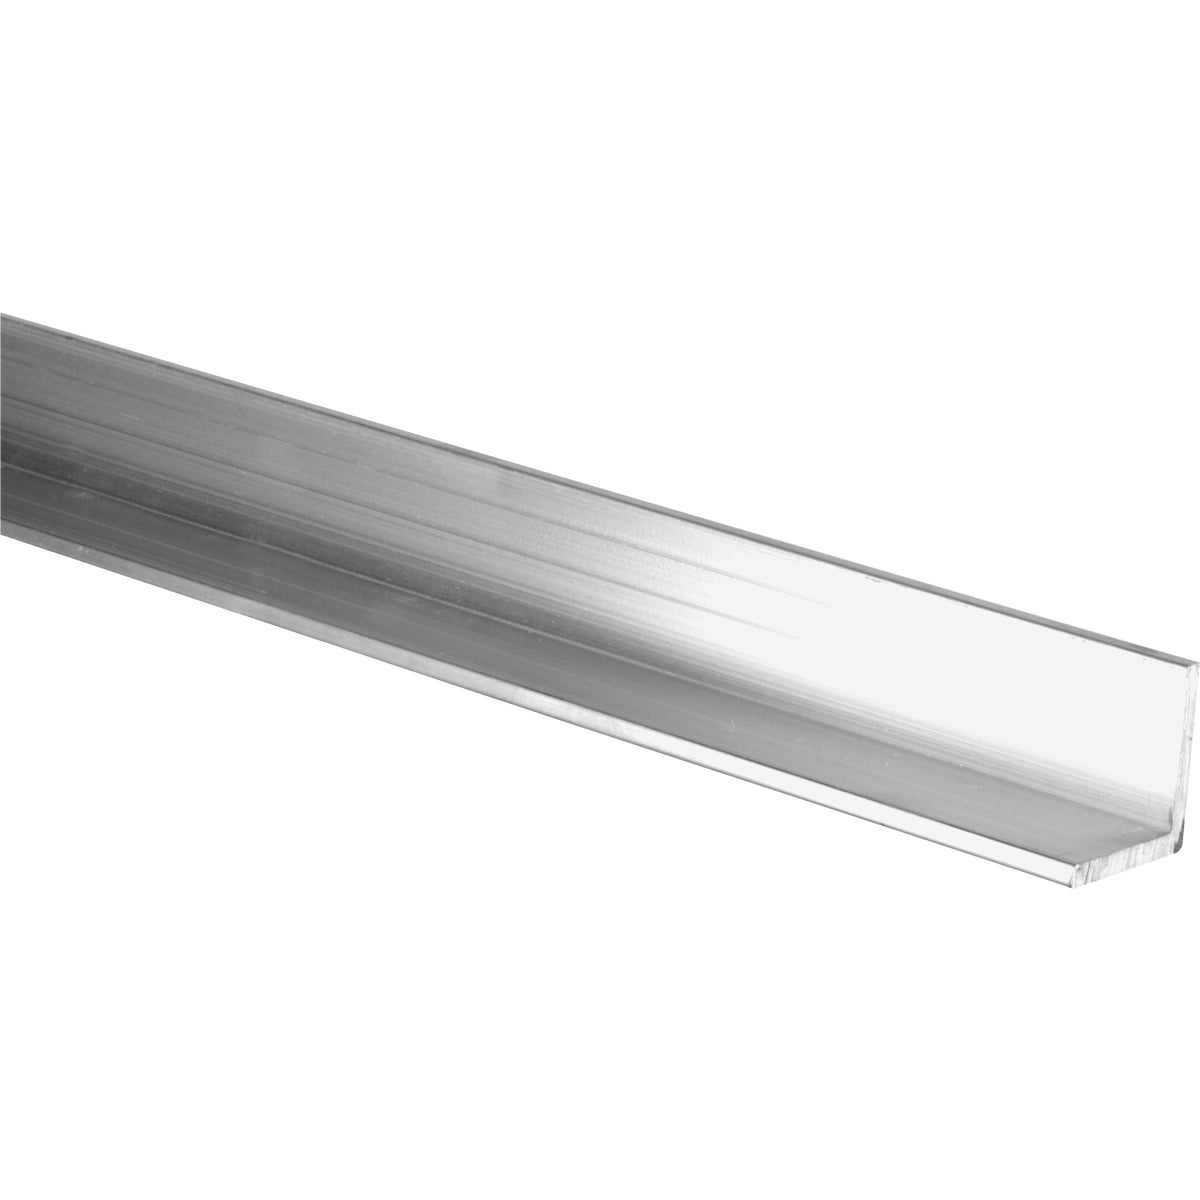 1/8X3/4X3' ALUM ANGLE - N342154 by National Mfg Co